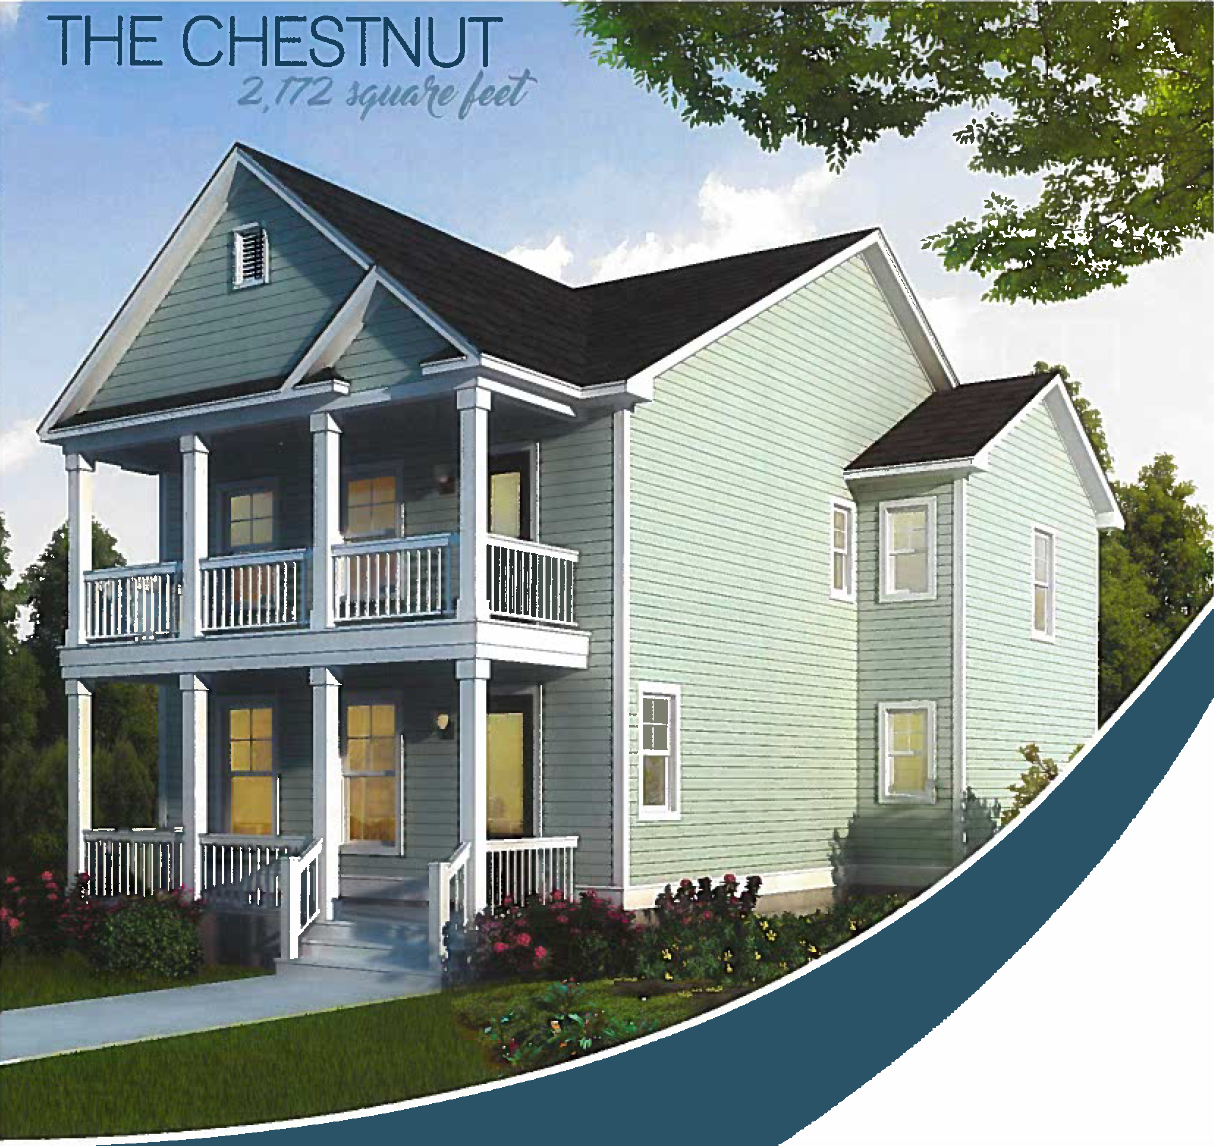 The Chestnut - Charleston Landmark Builders - Oak Terrace Preserve Phase 3